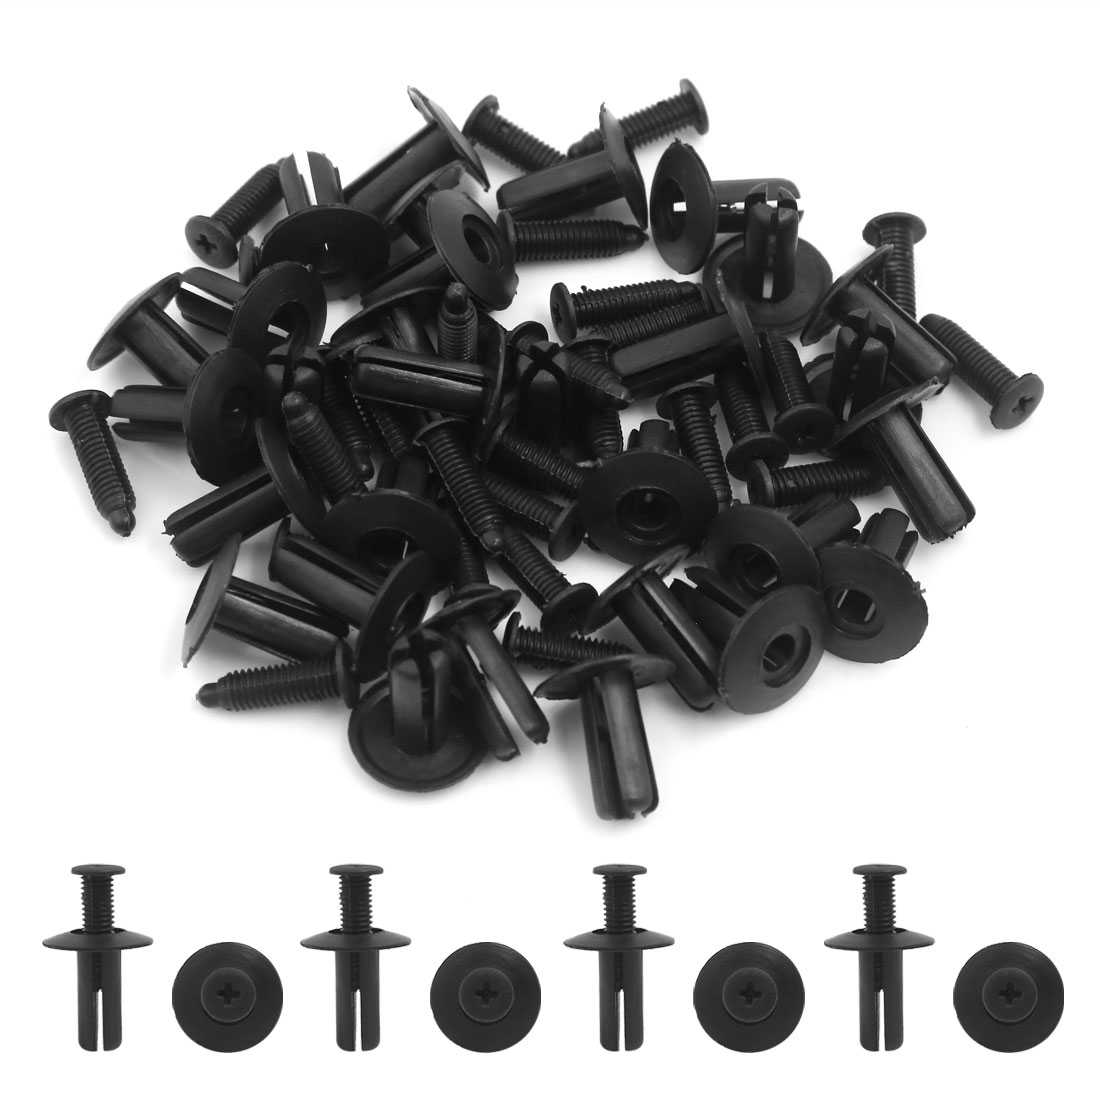 30 Pcs 8mm Hole Plastic Rivets Fastener Fender Bumper Push Pin Clips Black